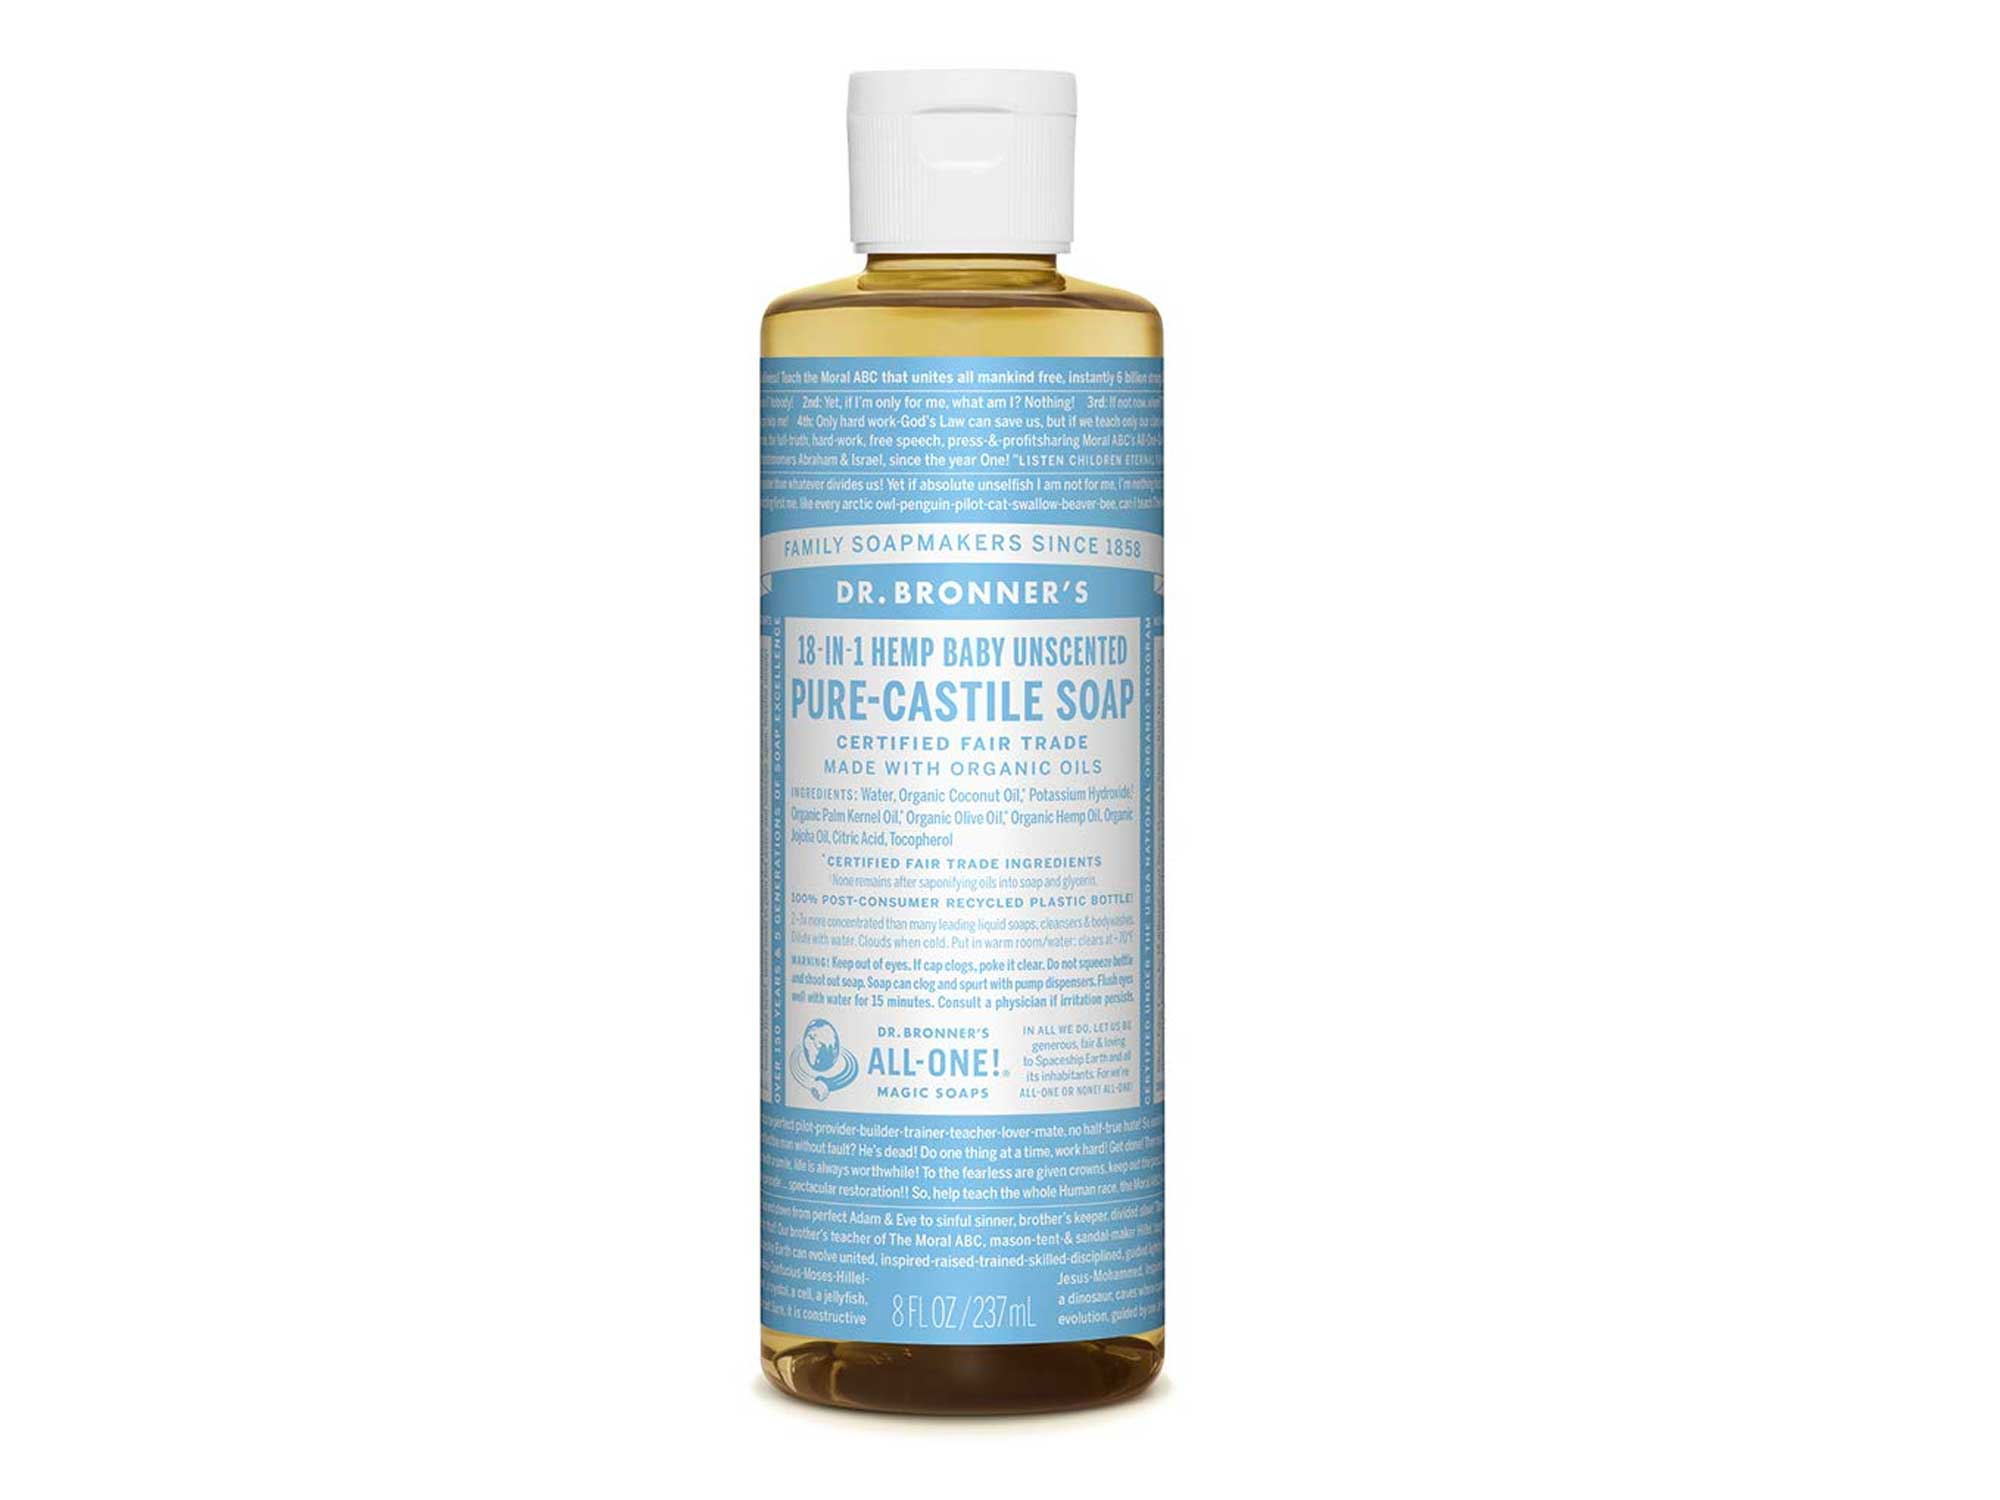 Dr. Bronner's - Pure-Castile Liquid Soap (Baby Unscented)